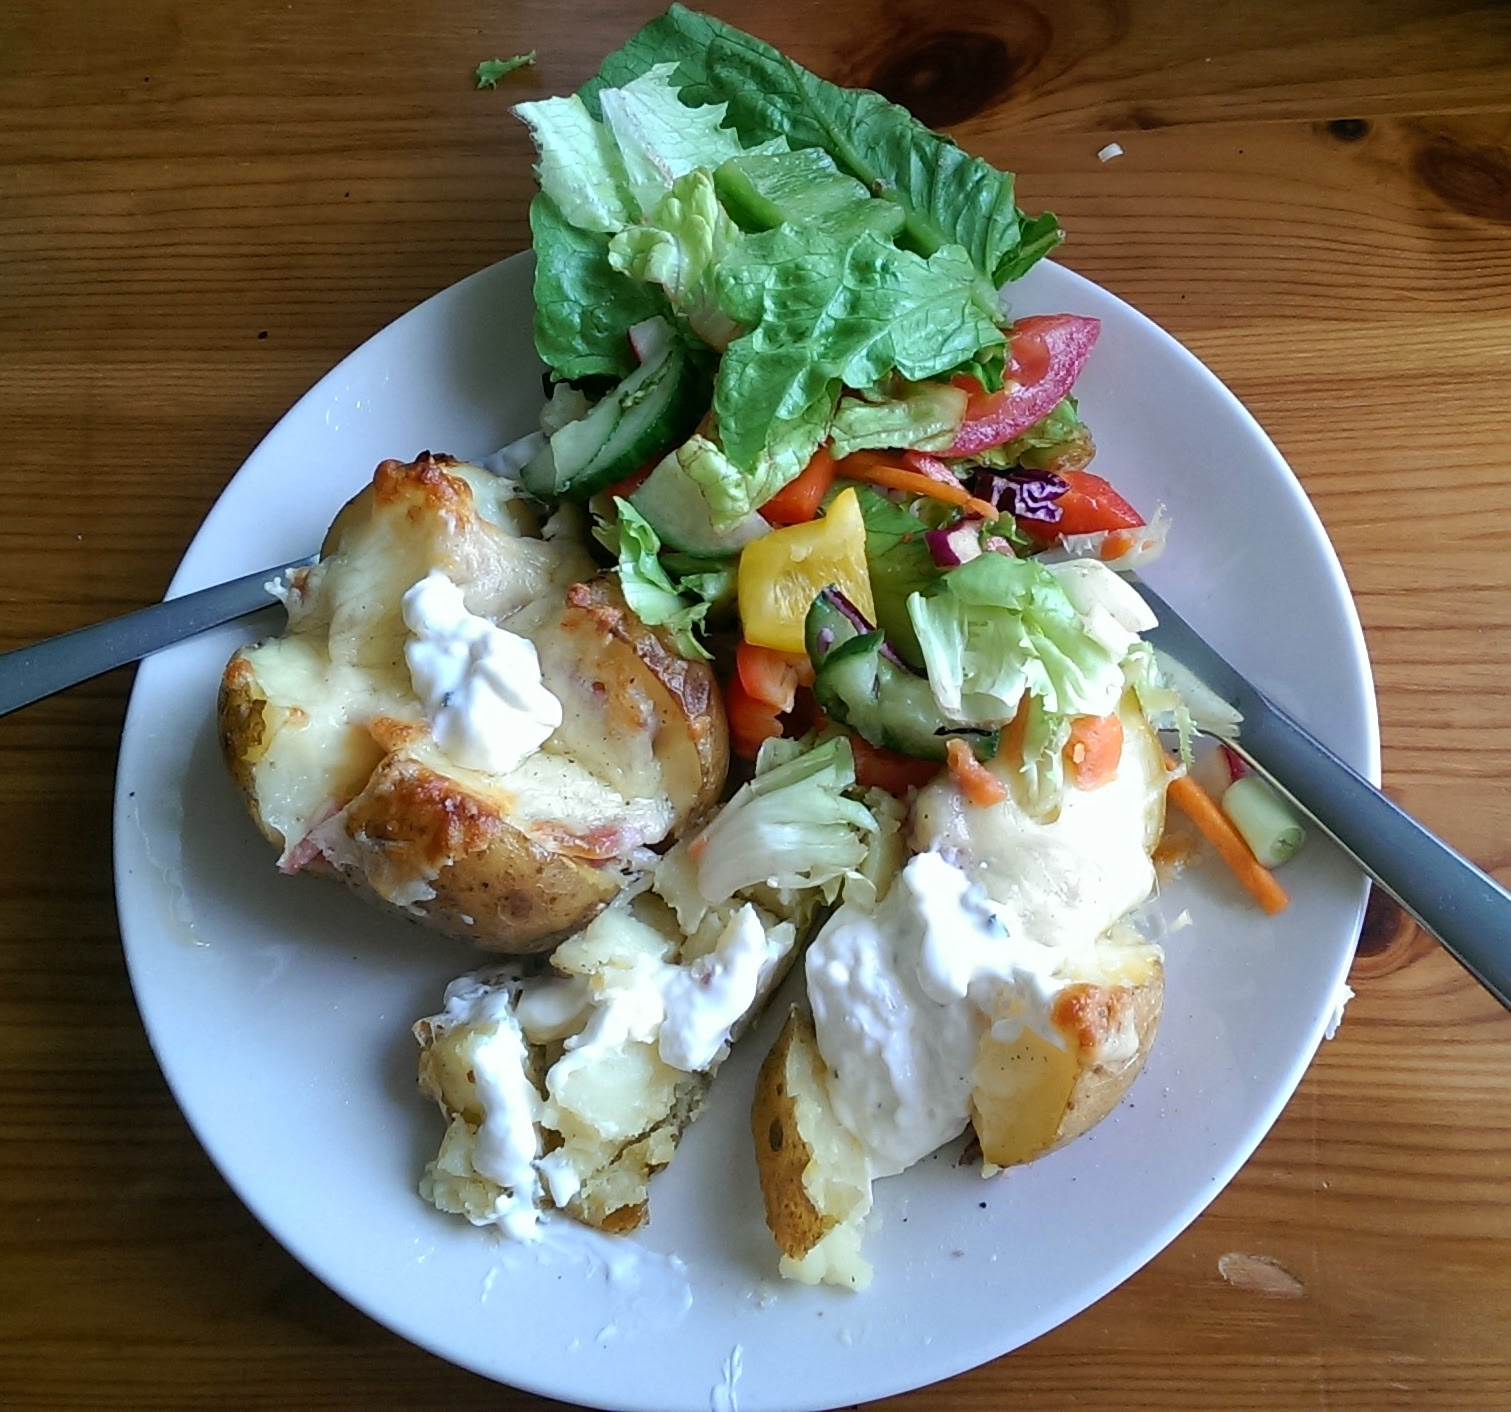 Bacon and Cheese Baked Potatoes and Salad